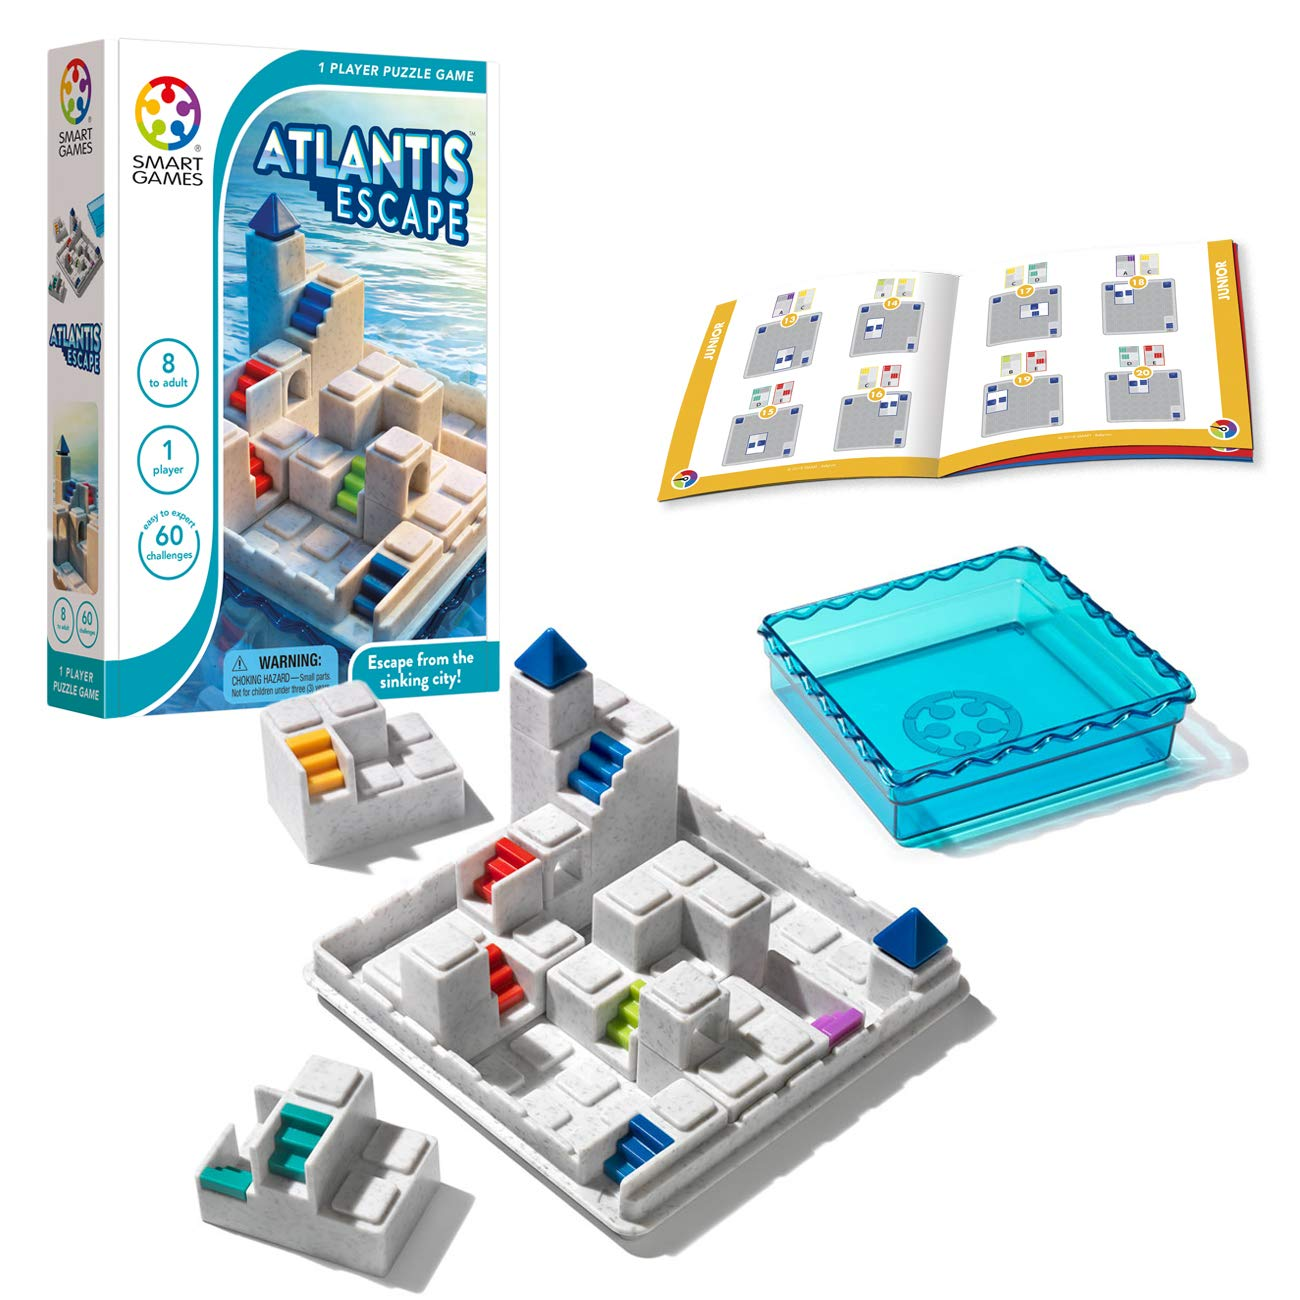 SmartGames Atlantis Escape; a 3D Path-Building Travel Game for Kids and Adults, a STEM Focused Cognitive Skill-Building Brain Game - Brain Teaser for Ages 8 & Up, 60 Challenges. by SmartGames